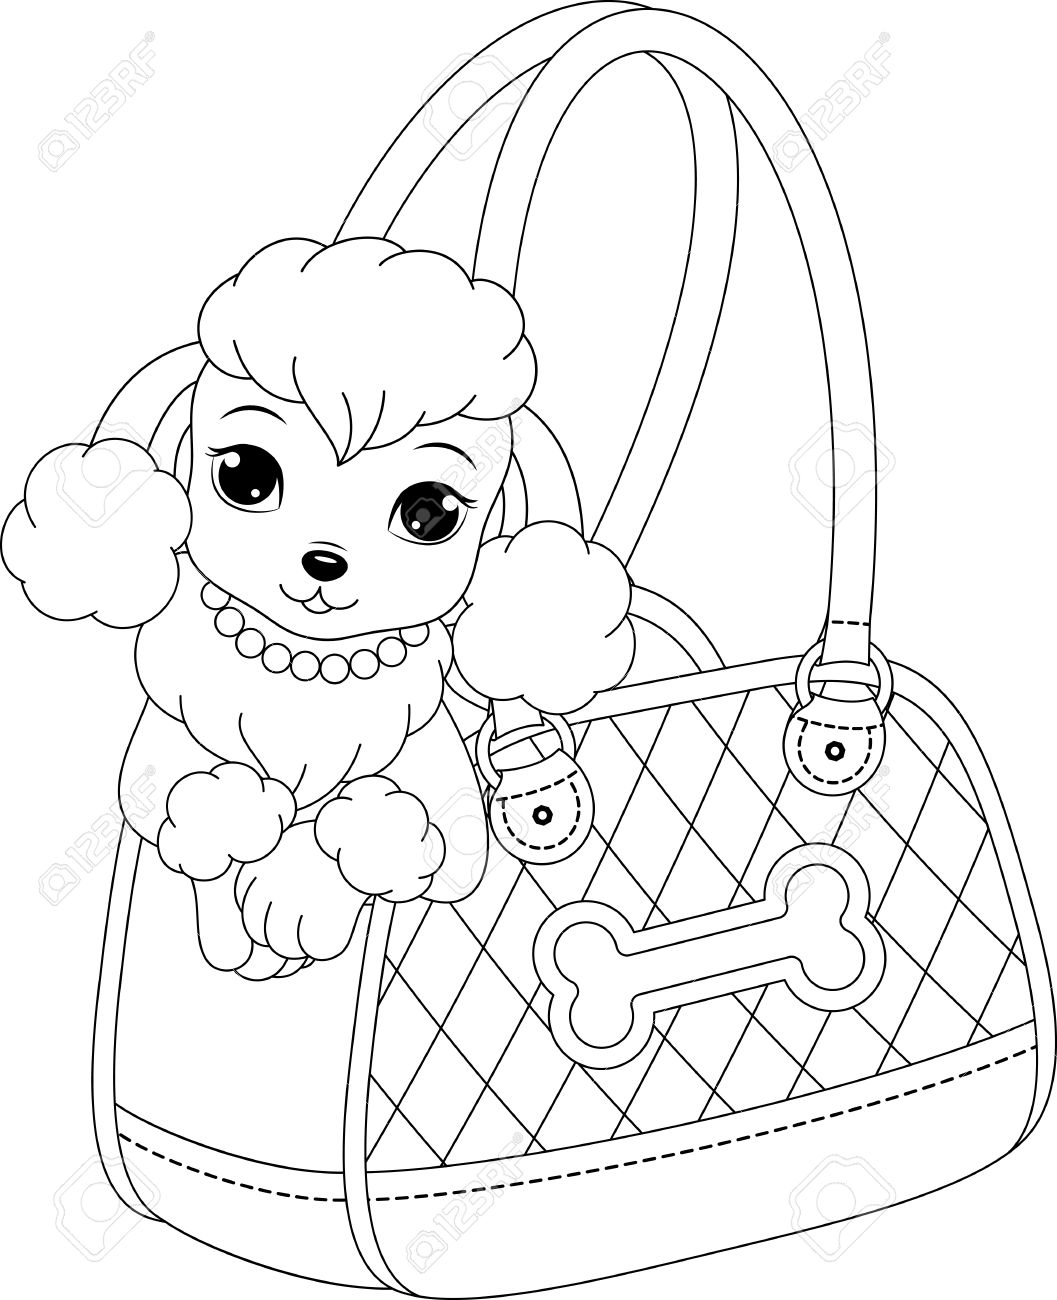 poodle animal coloring pages. poodle coloring page Stock Vector  61383225 Poodle Coloring Page Royalty Free Cliparts Vectors And